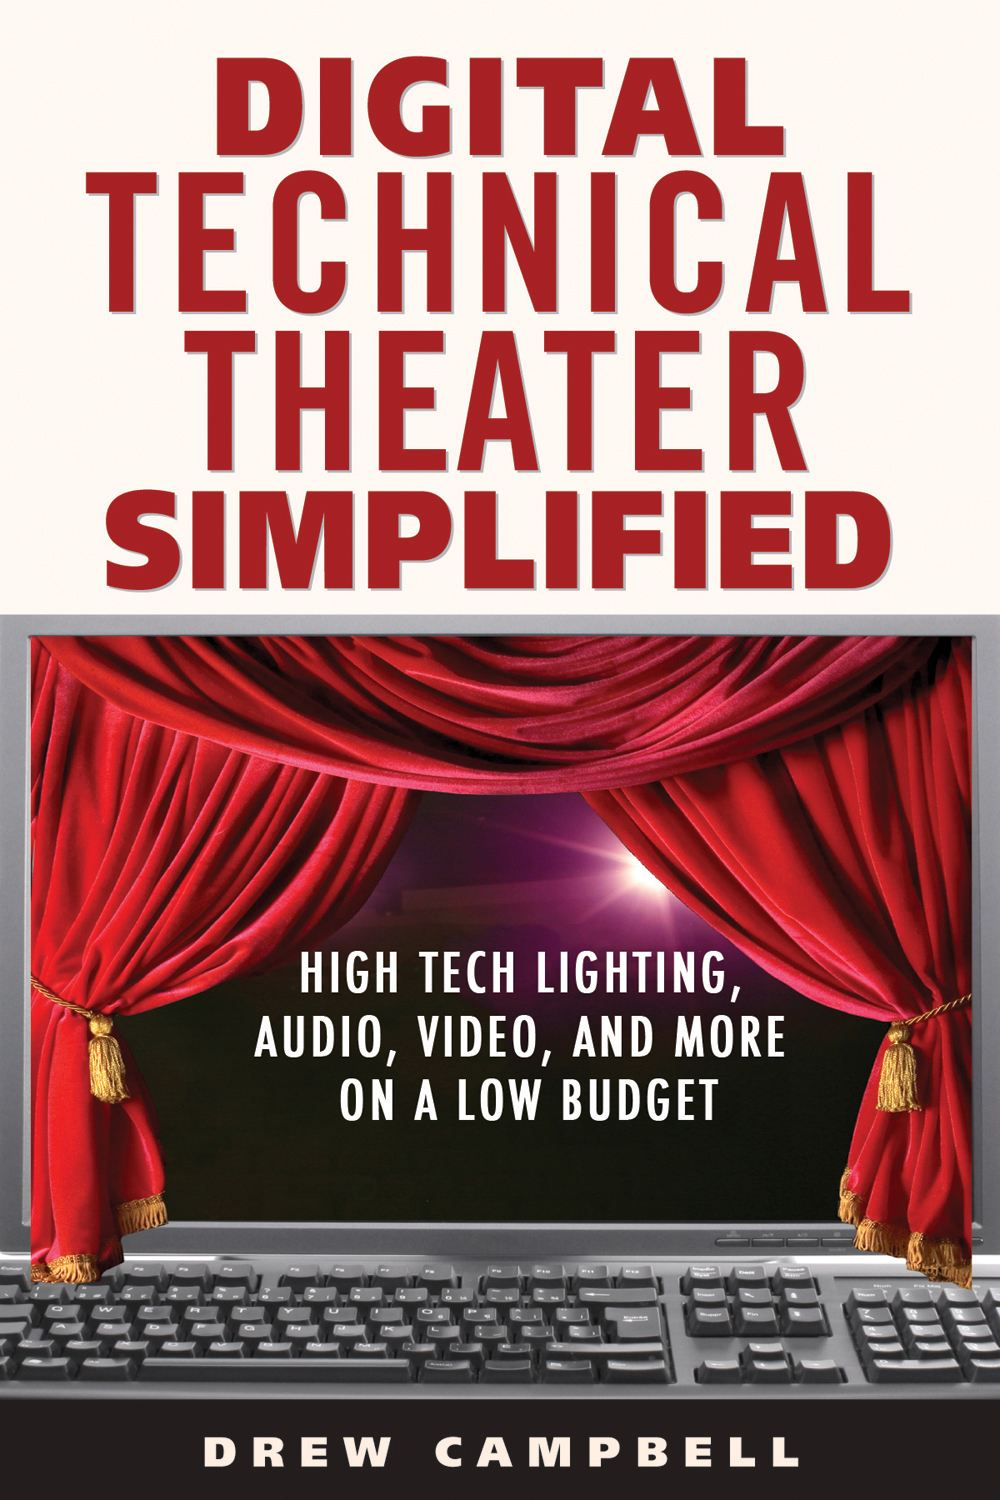 Digital Technical Theater Simplified By: Drew Campbell